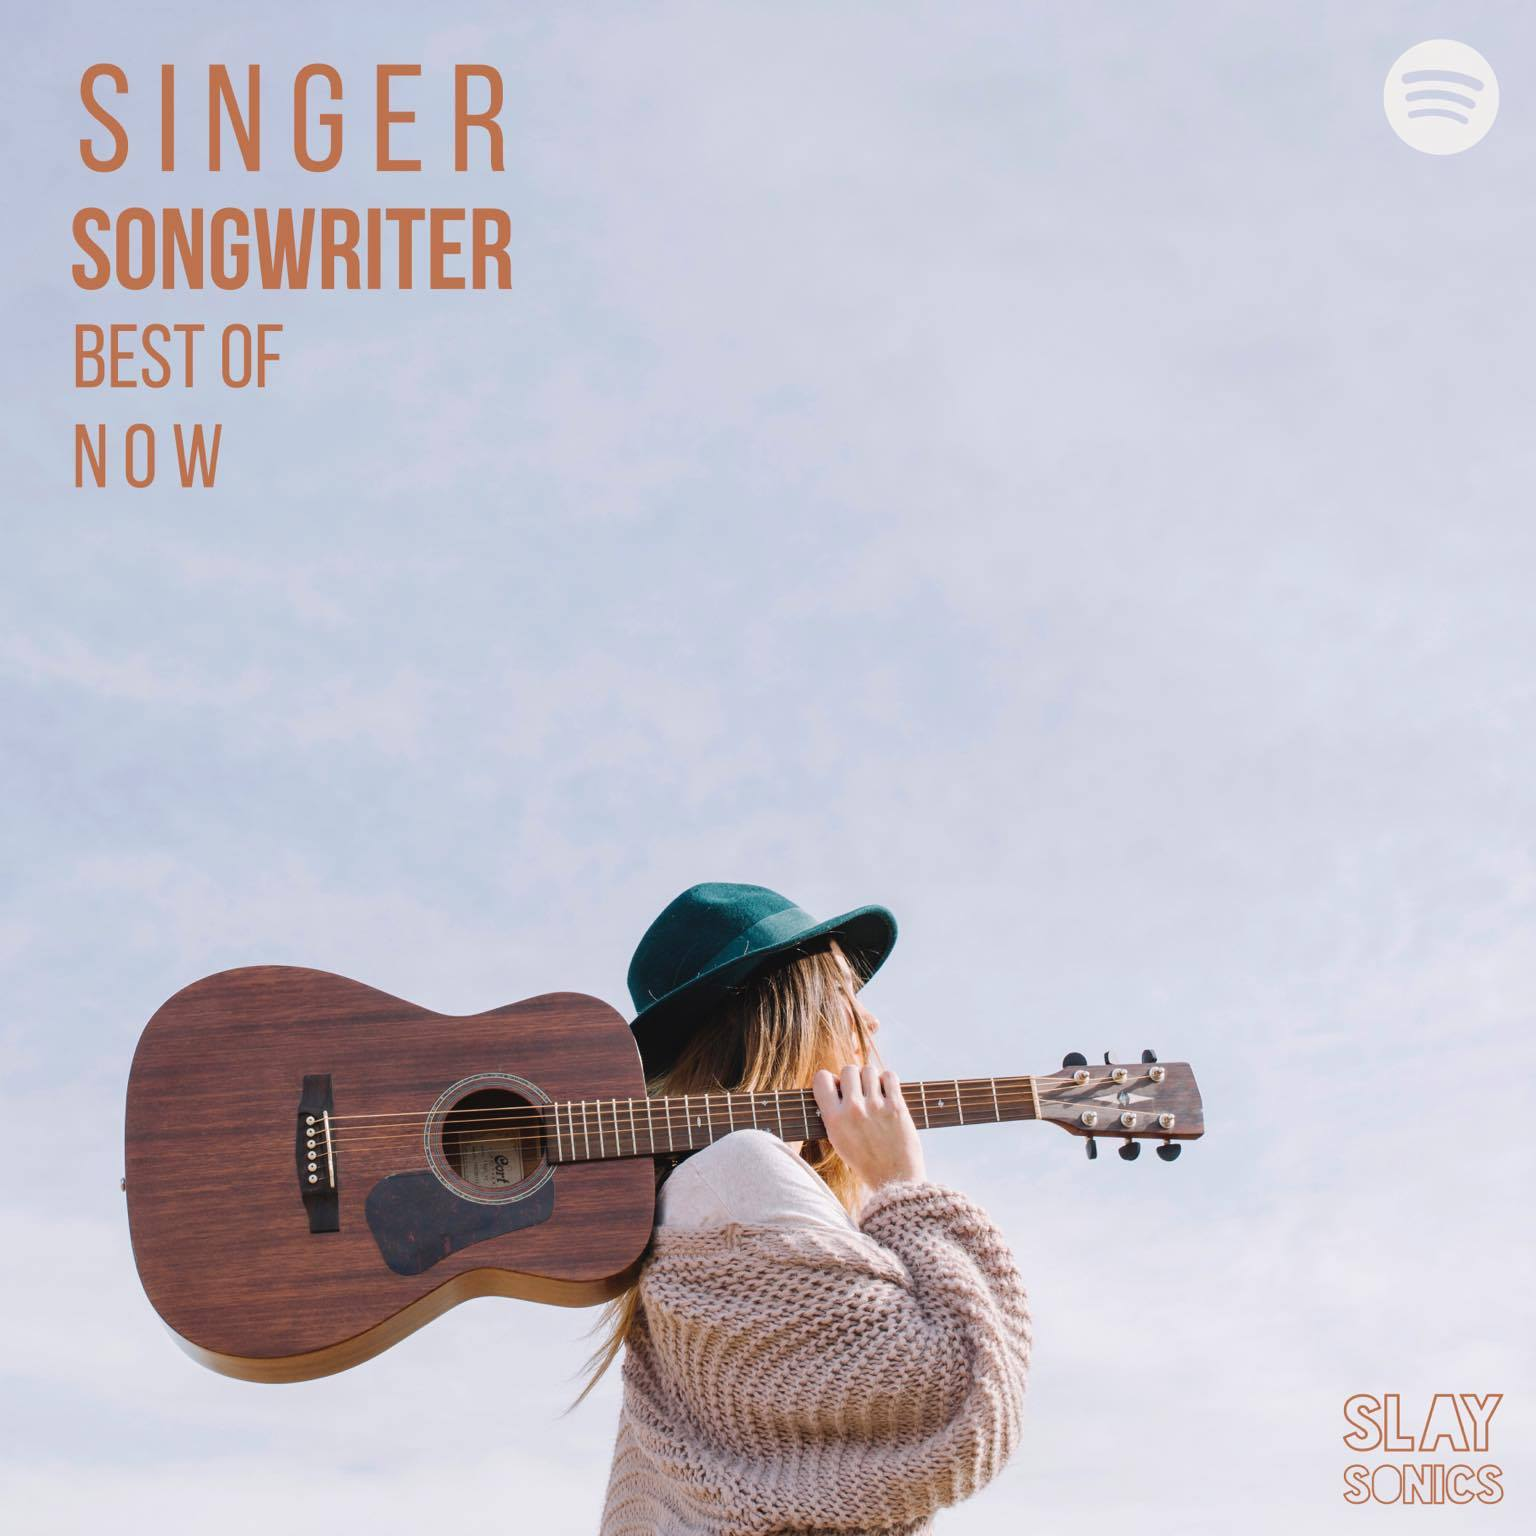 Spotify Singer Songwriter playlist